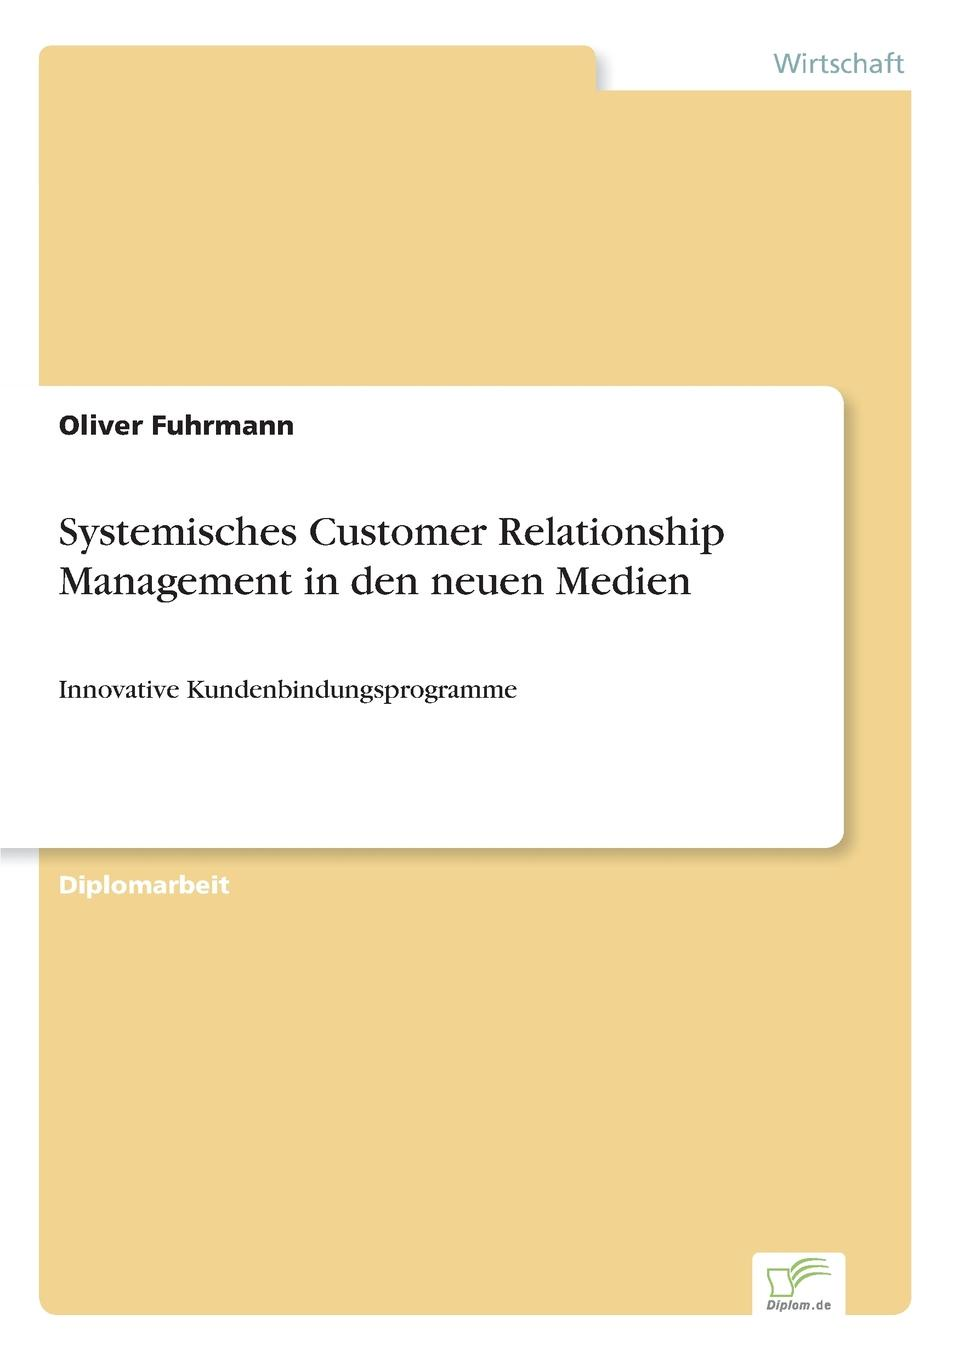 Oliver Fuhrmann Systemisches Customer Relationship Management in den neuen Medien aga kamilla it fur kunden qualitatsmanagement bei customer relationship management